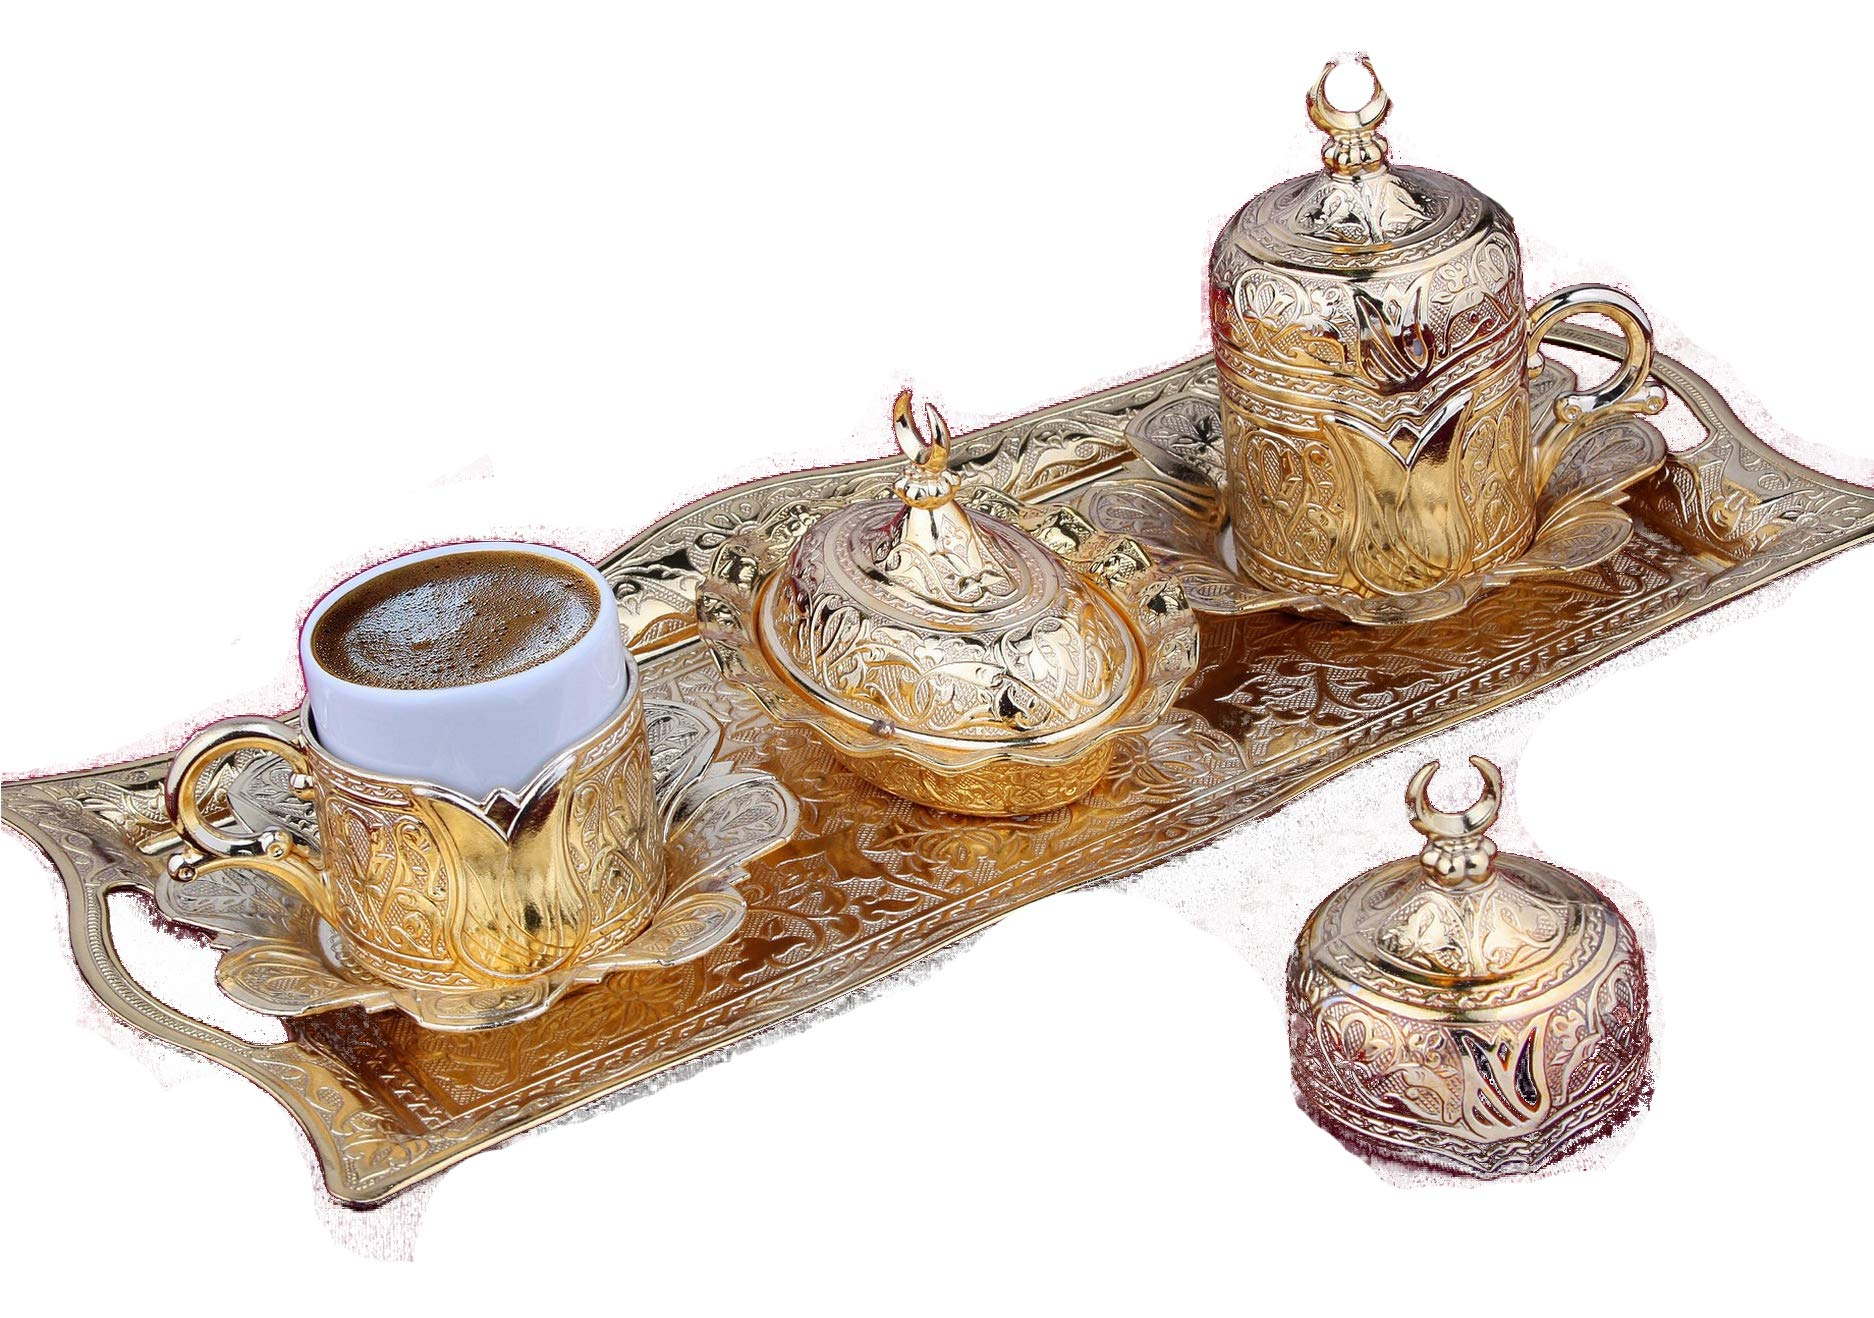 Gold Case Gold plated Turkish, Arabic, Greek and Espresso Coffee Set for 2 - Made in Turkey - 11 pieced set, Gold